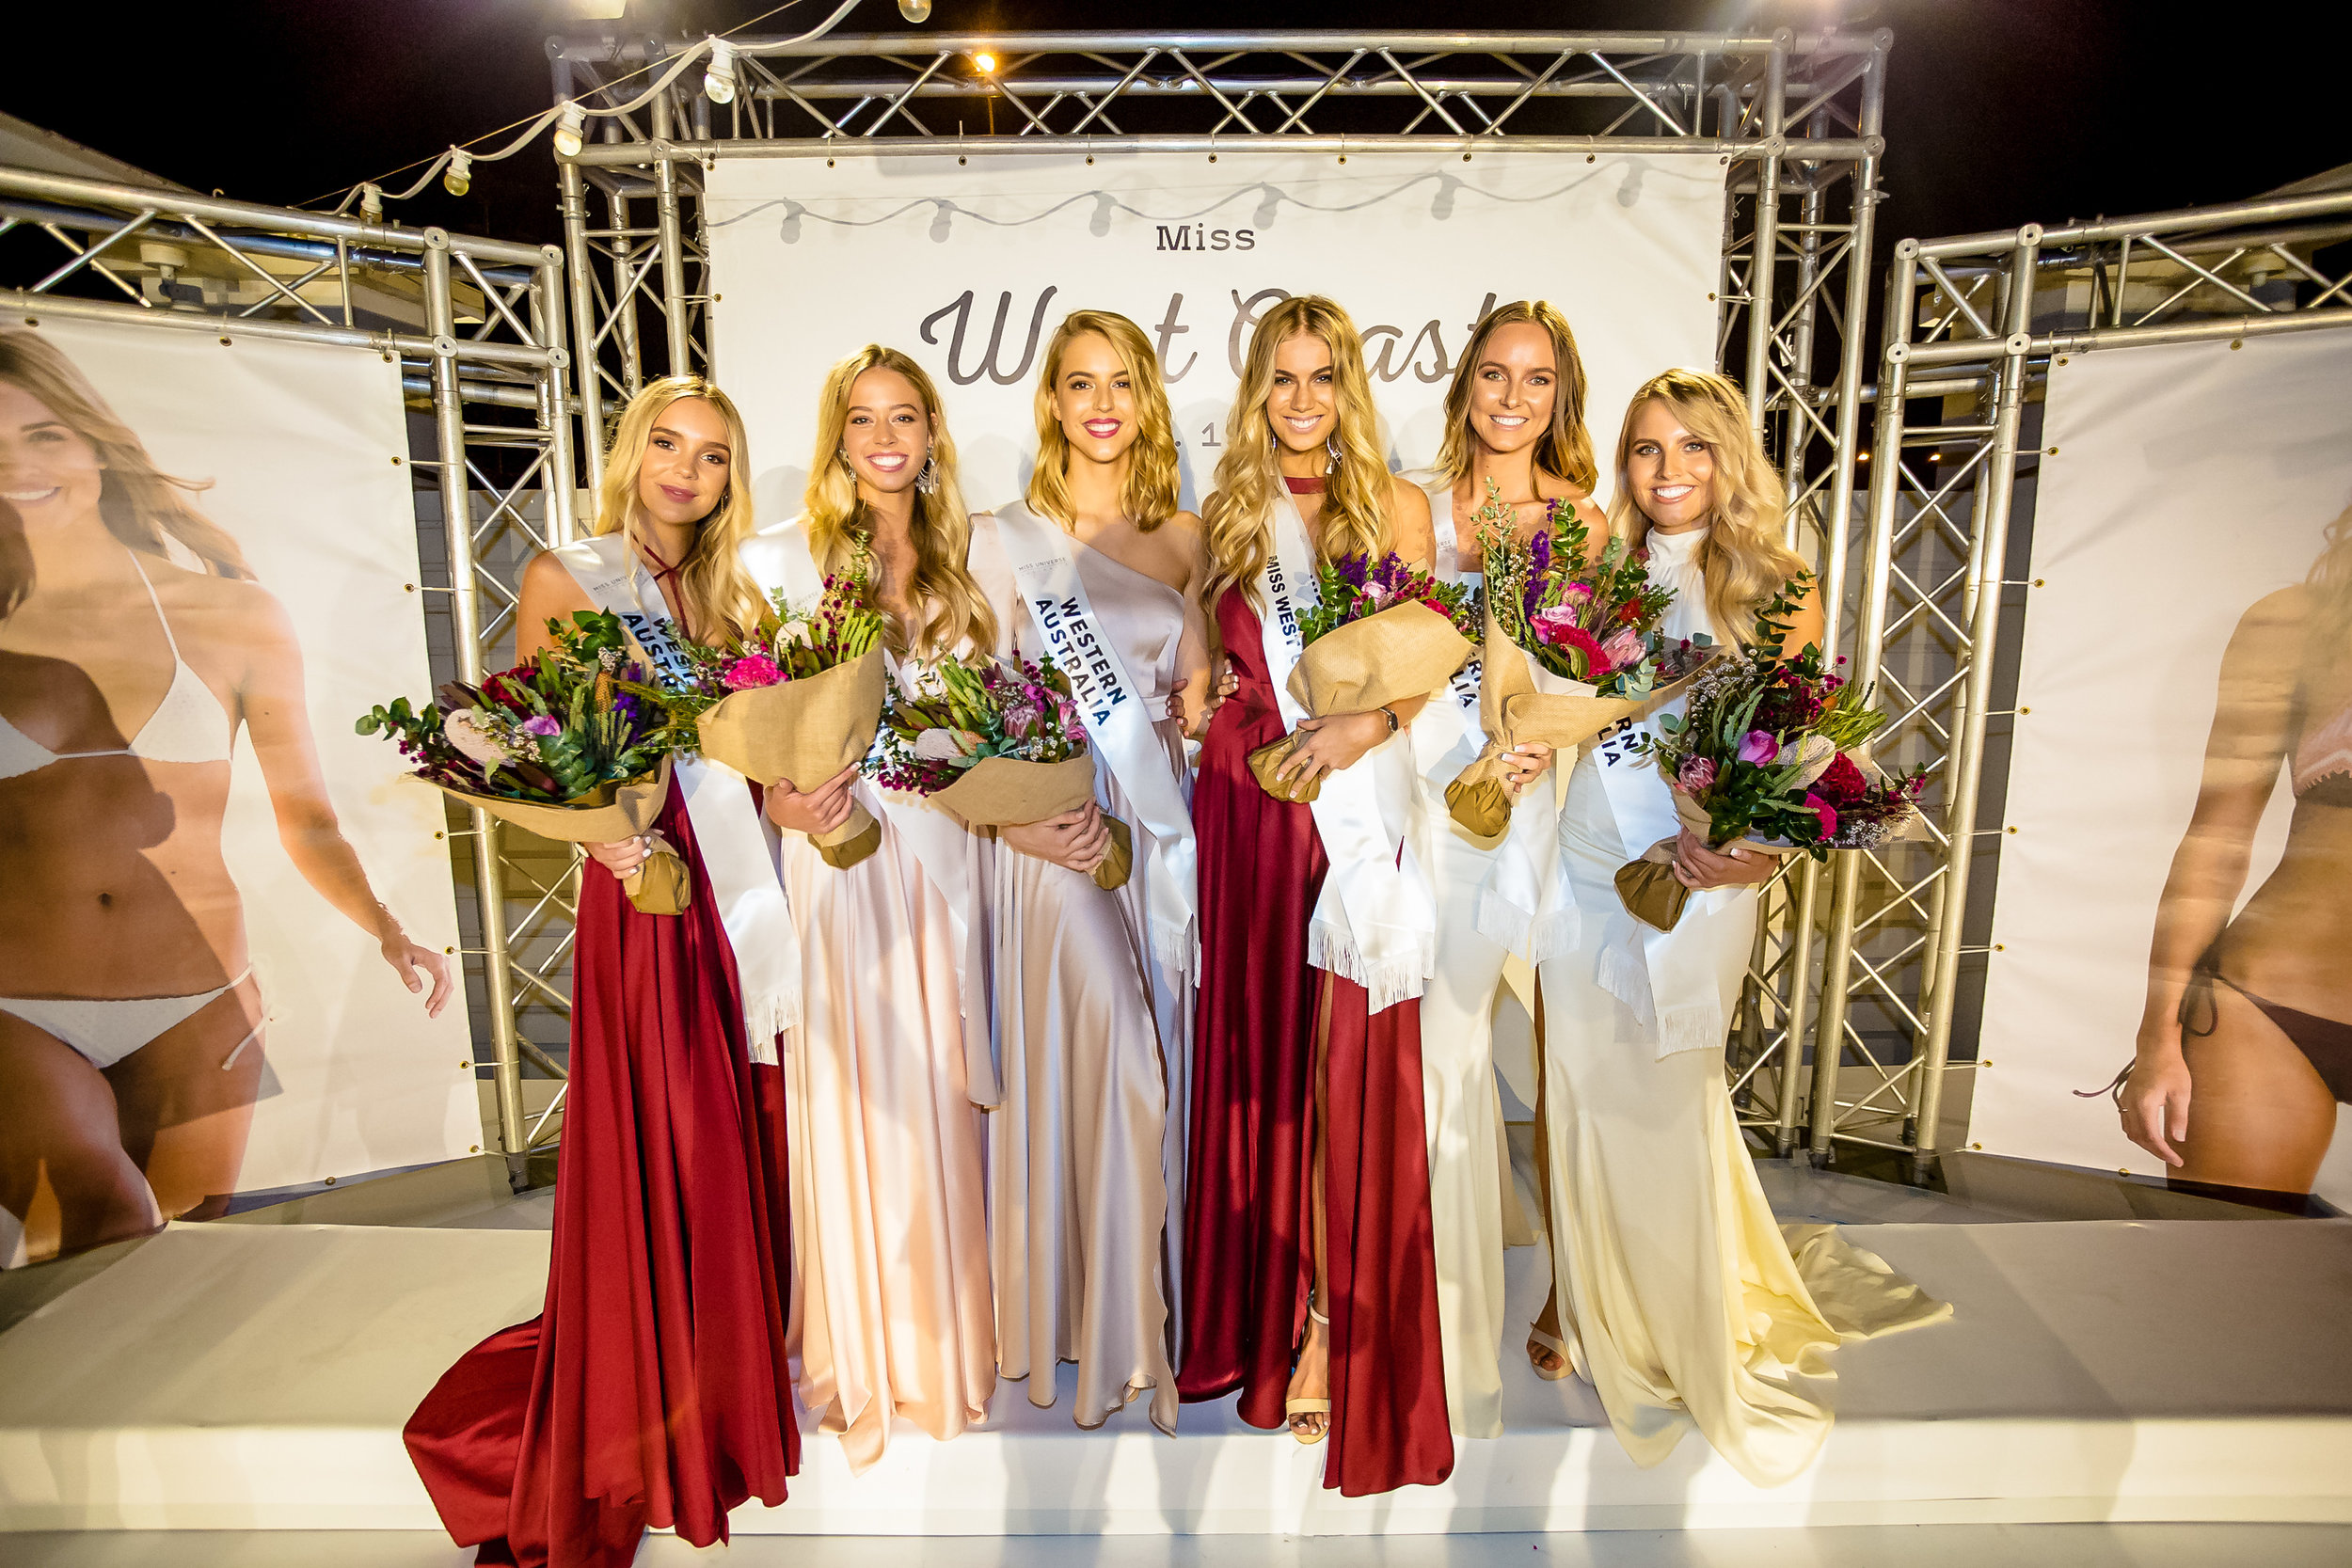 2018.04.06 MISS WEST COAST FINAL FULL ALBUM-268.jpg